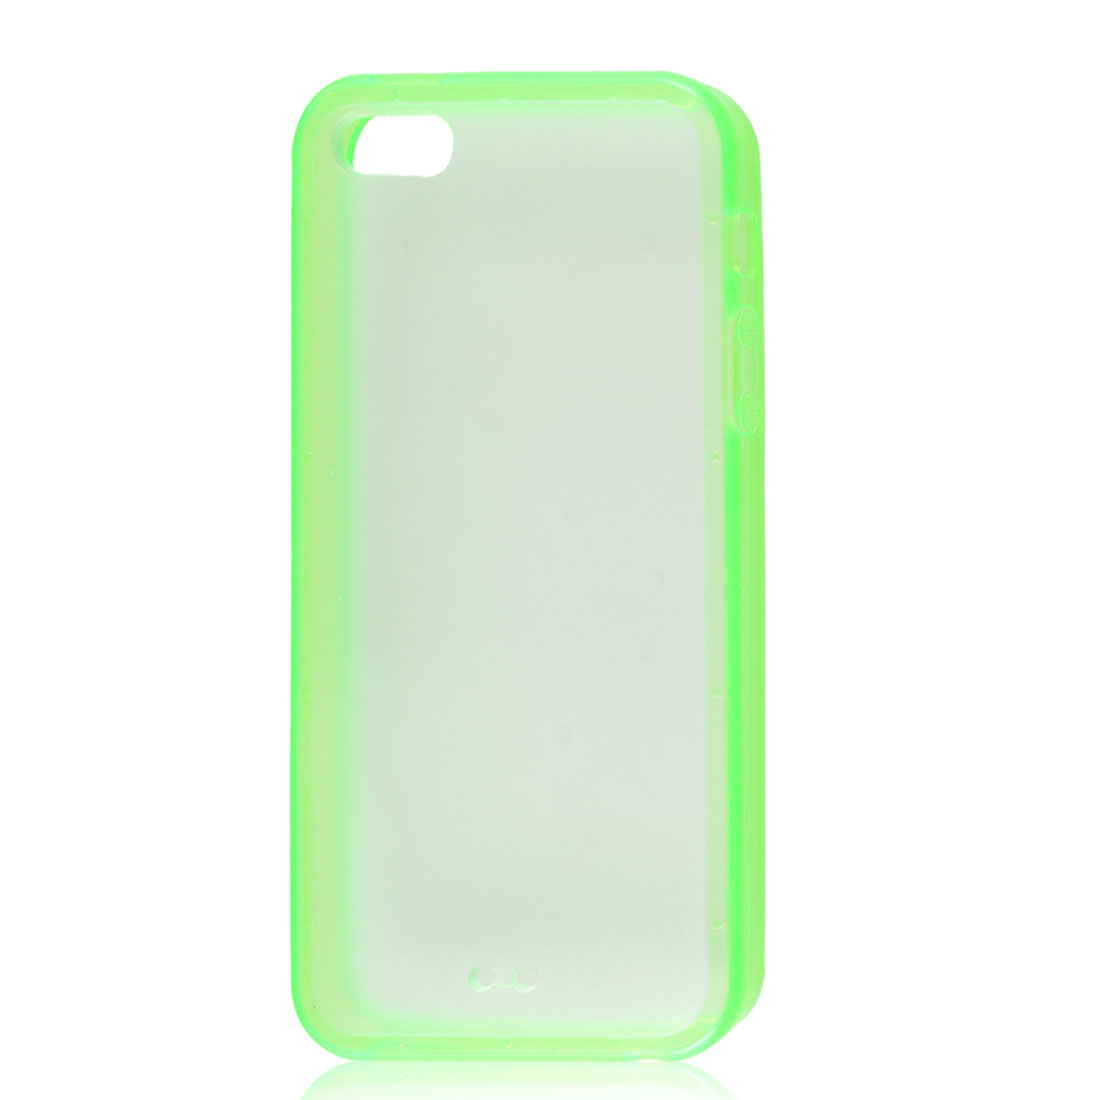 Green Soft Trim Clear Hard Back Plastic Protective Case Cover for iPhone 5 5G